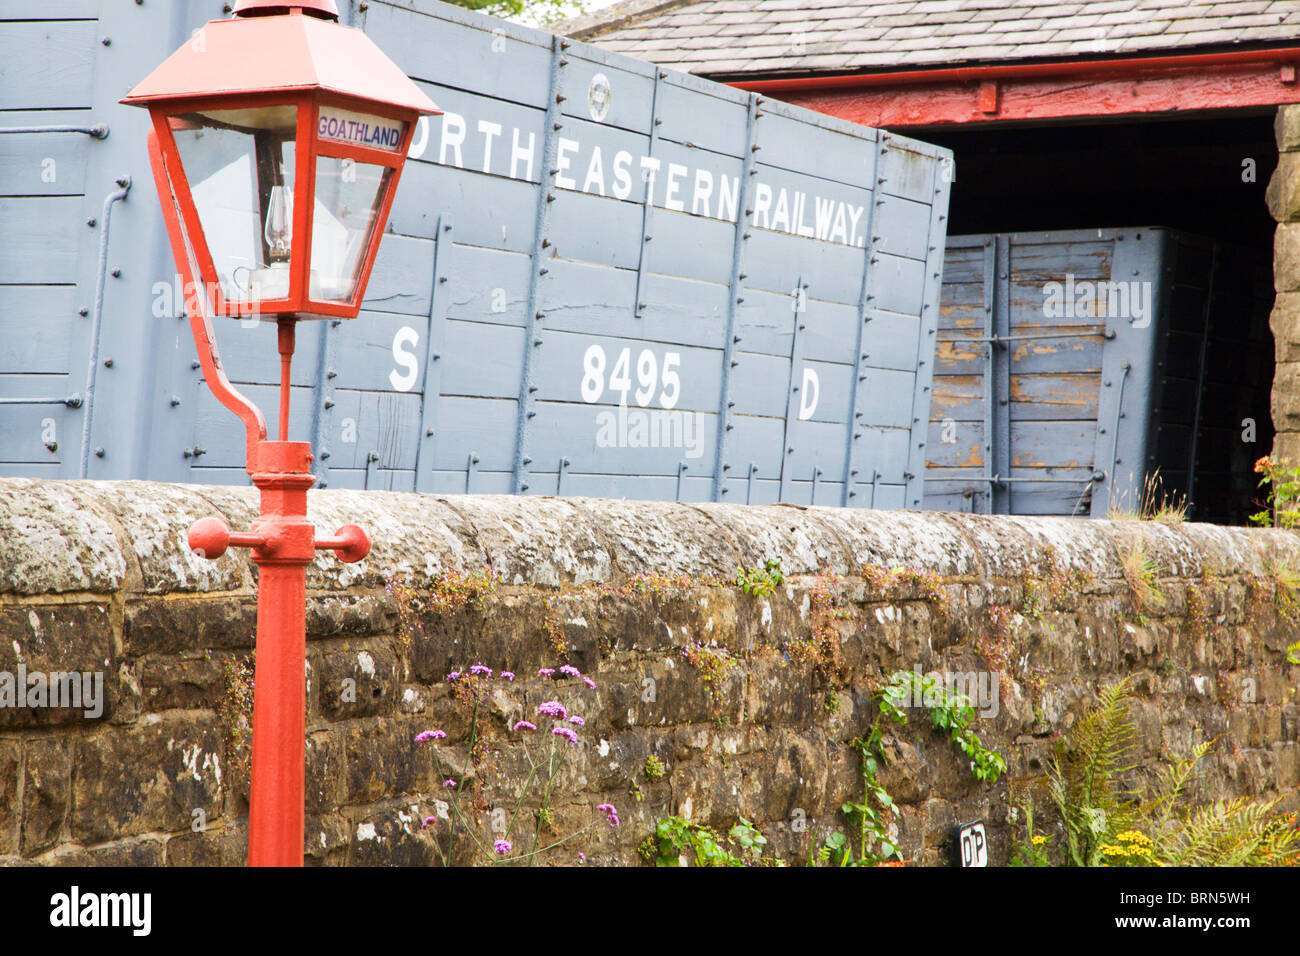 Lamp and Old North Eastern Railway Wagon at Goathland Station North Yorkshire England - Stock Image